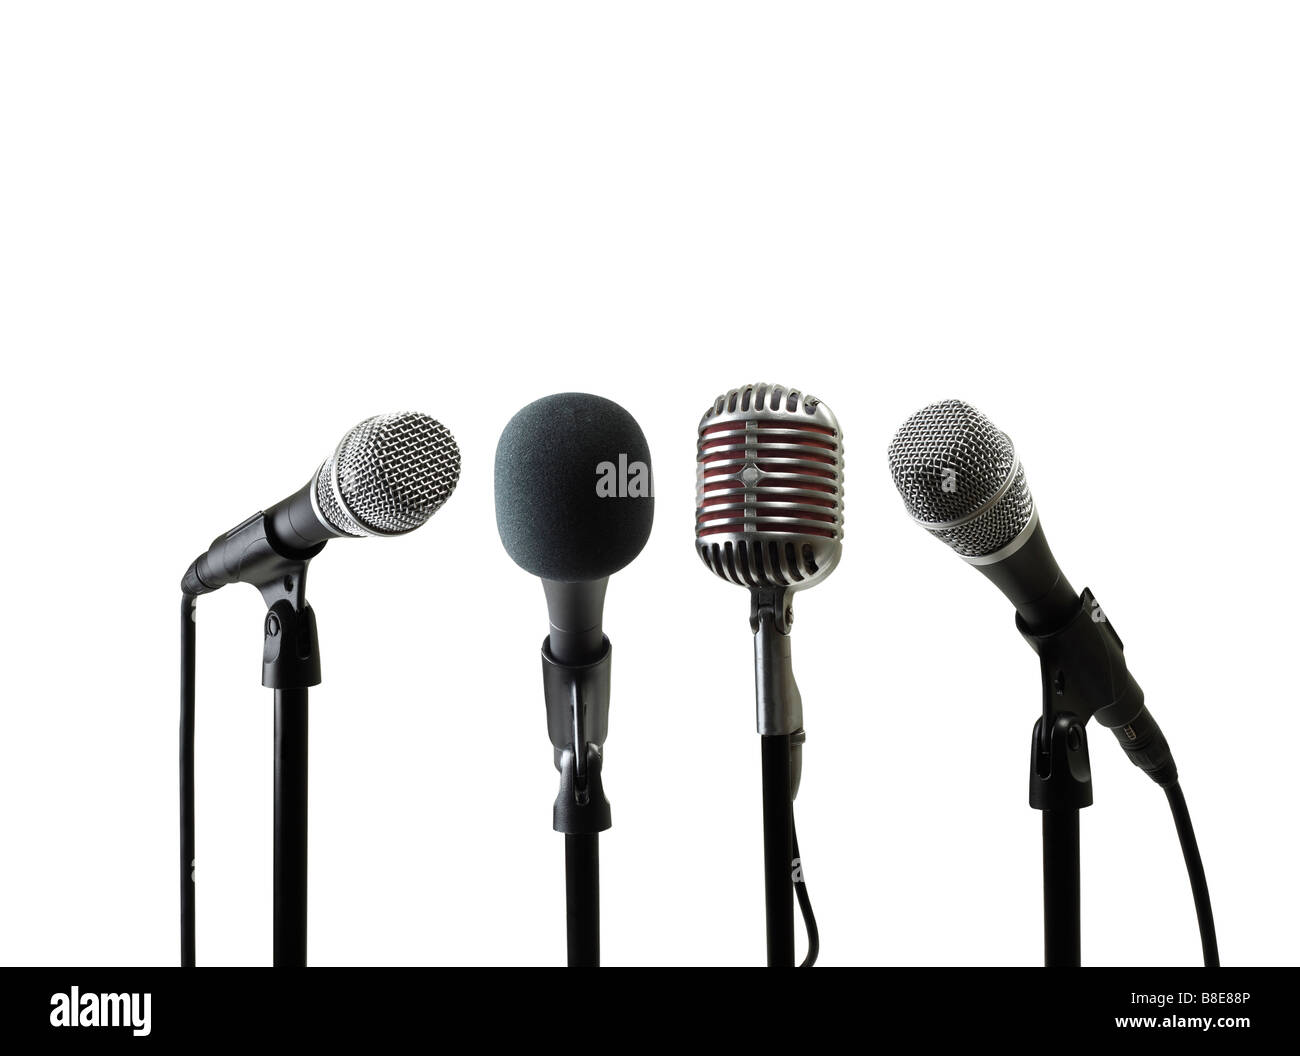 Four Microphones on Stand - Stock Image